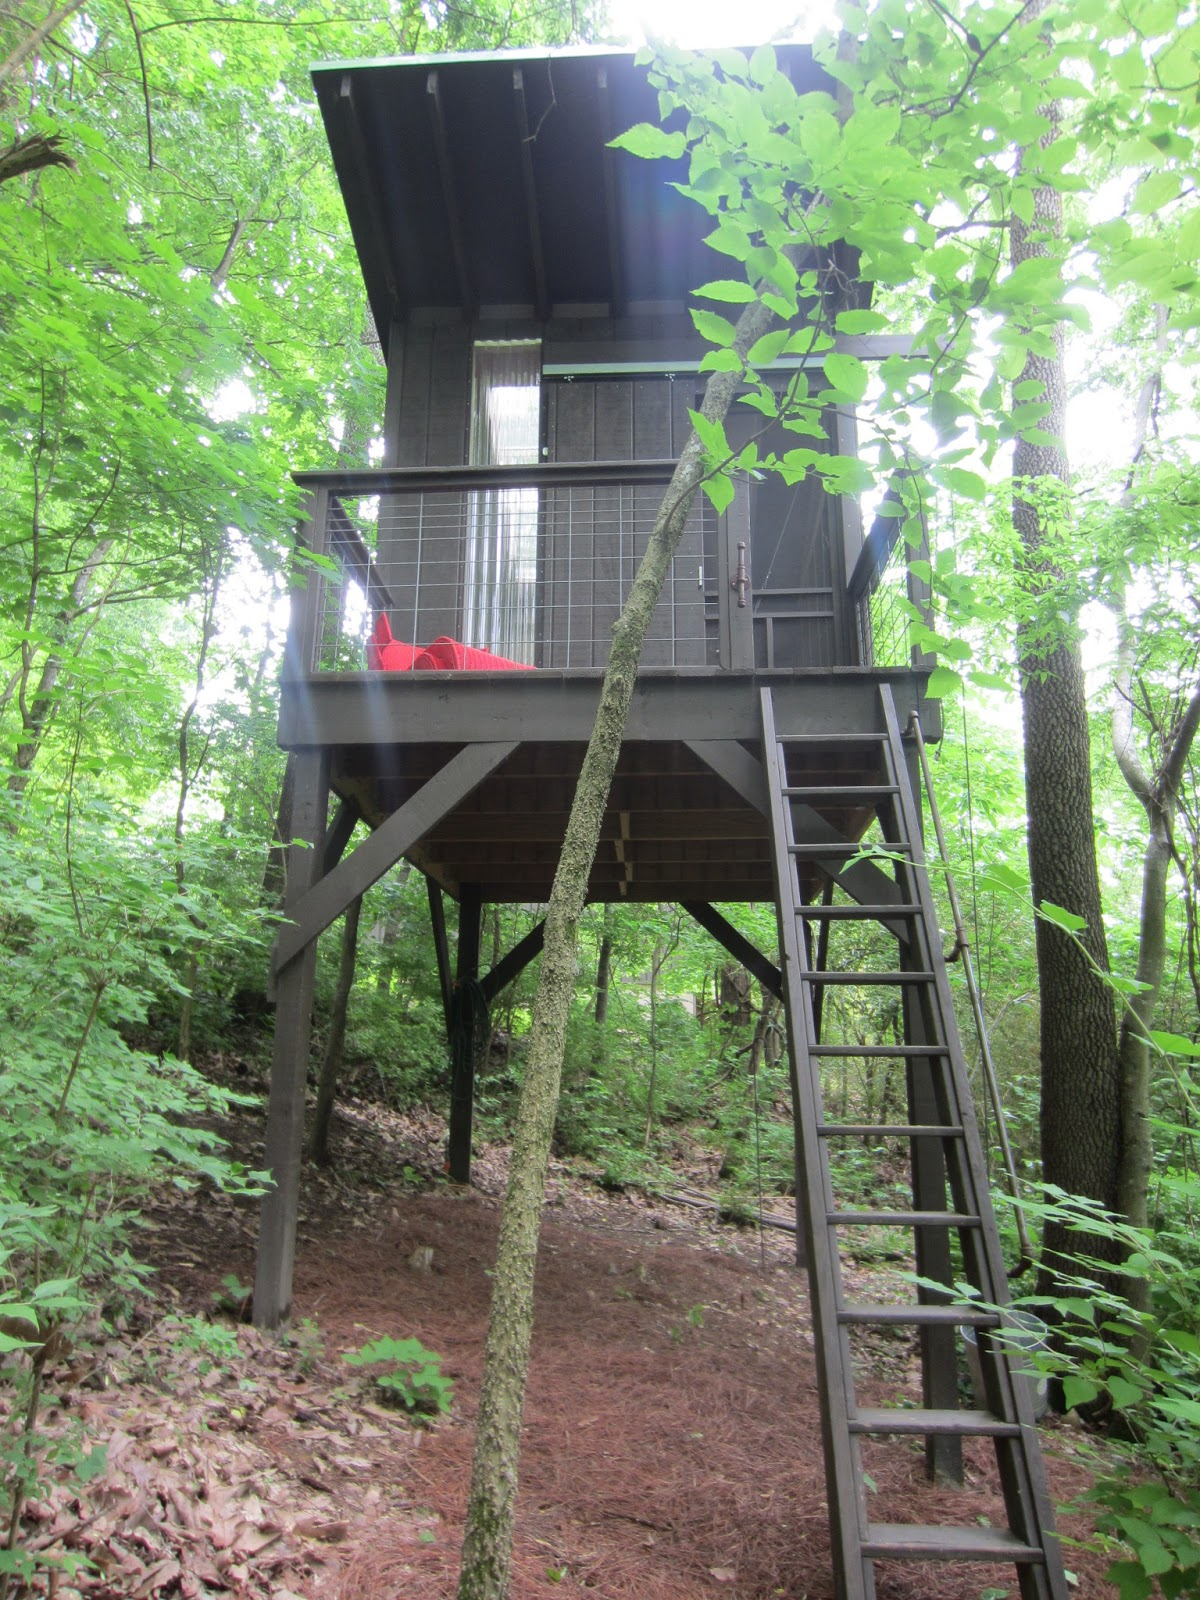 A modern tree house tiny stilt house in for Modern tree house designs